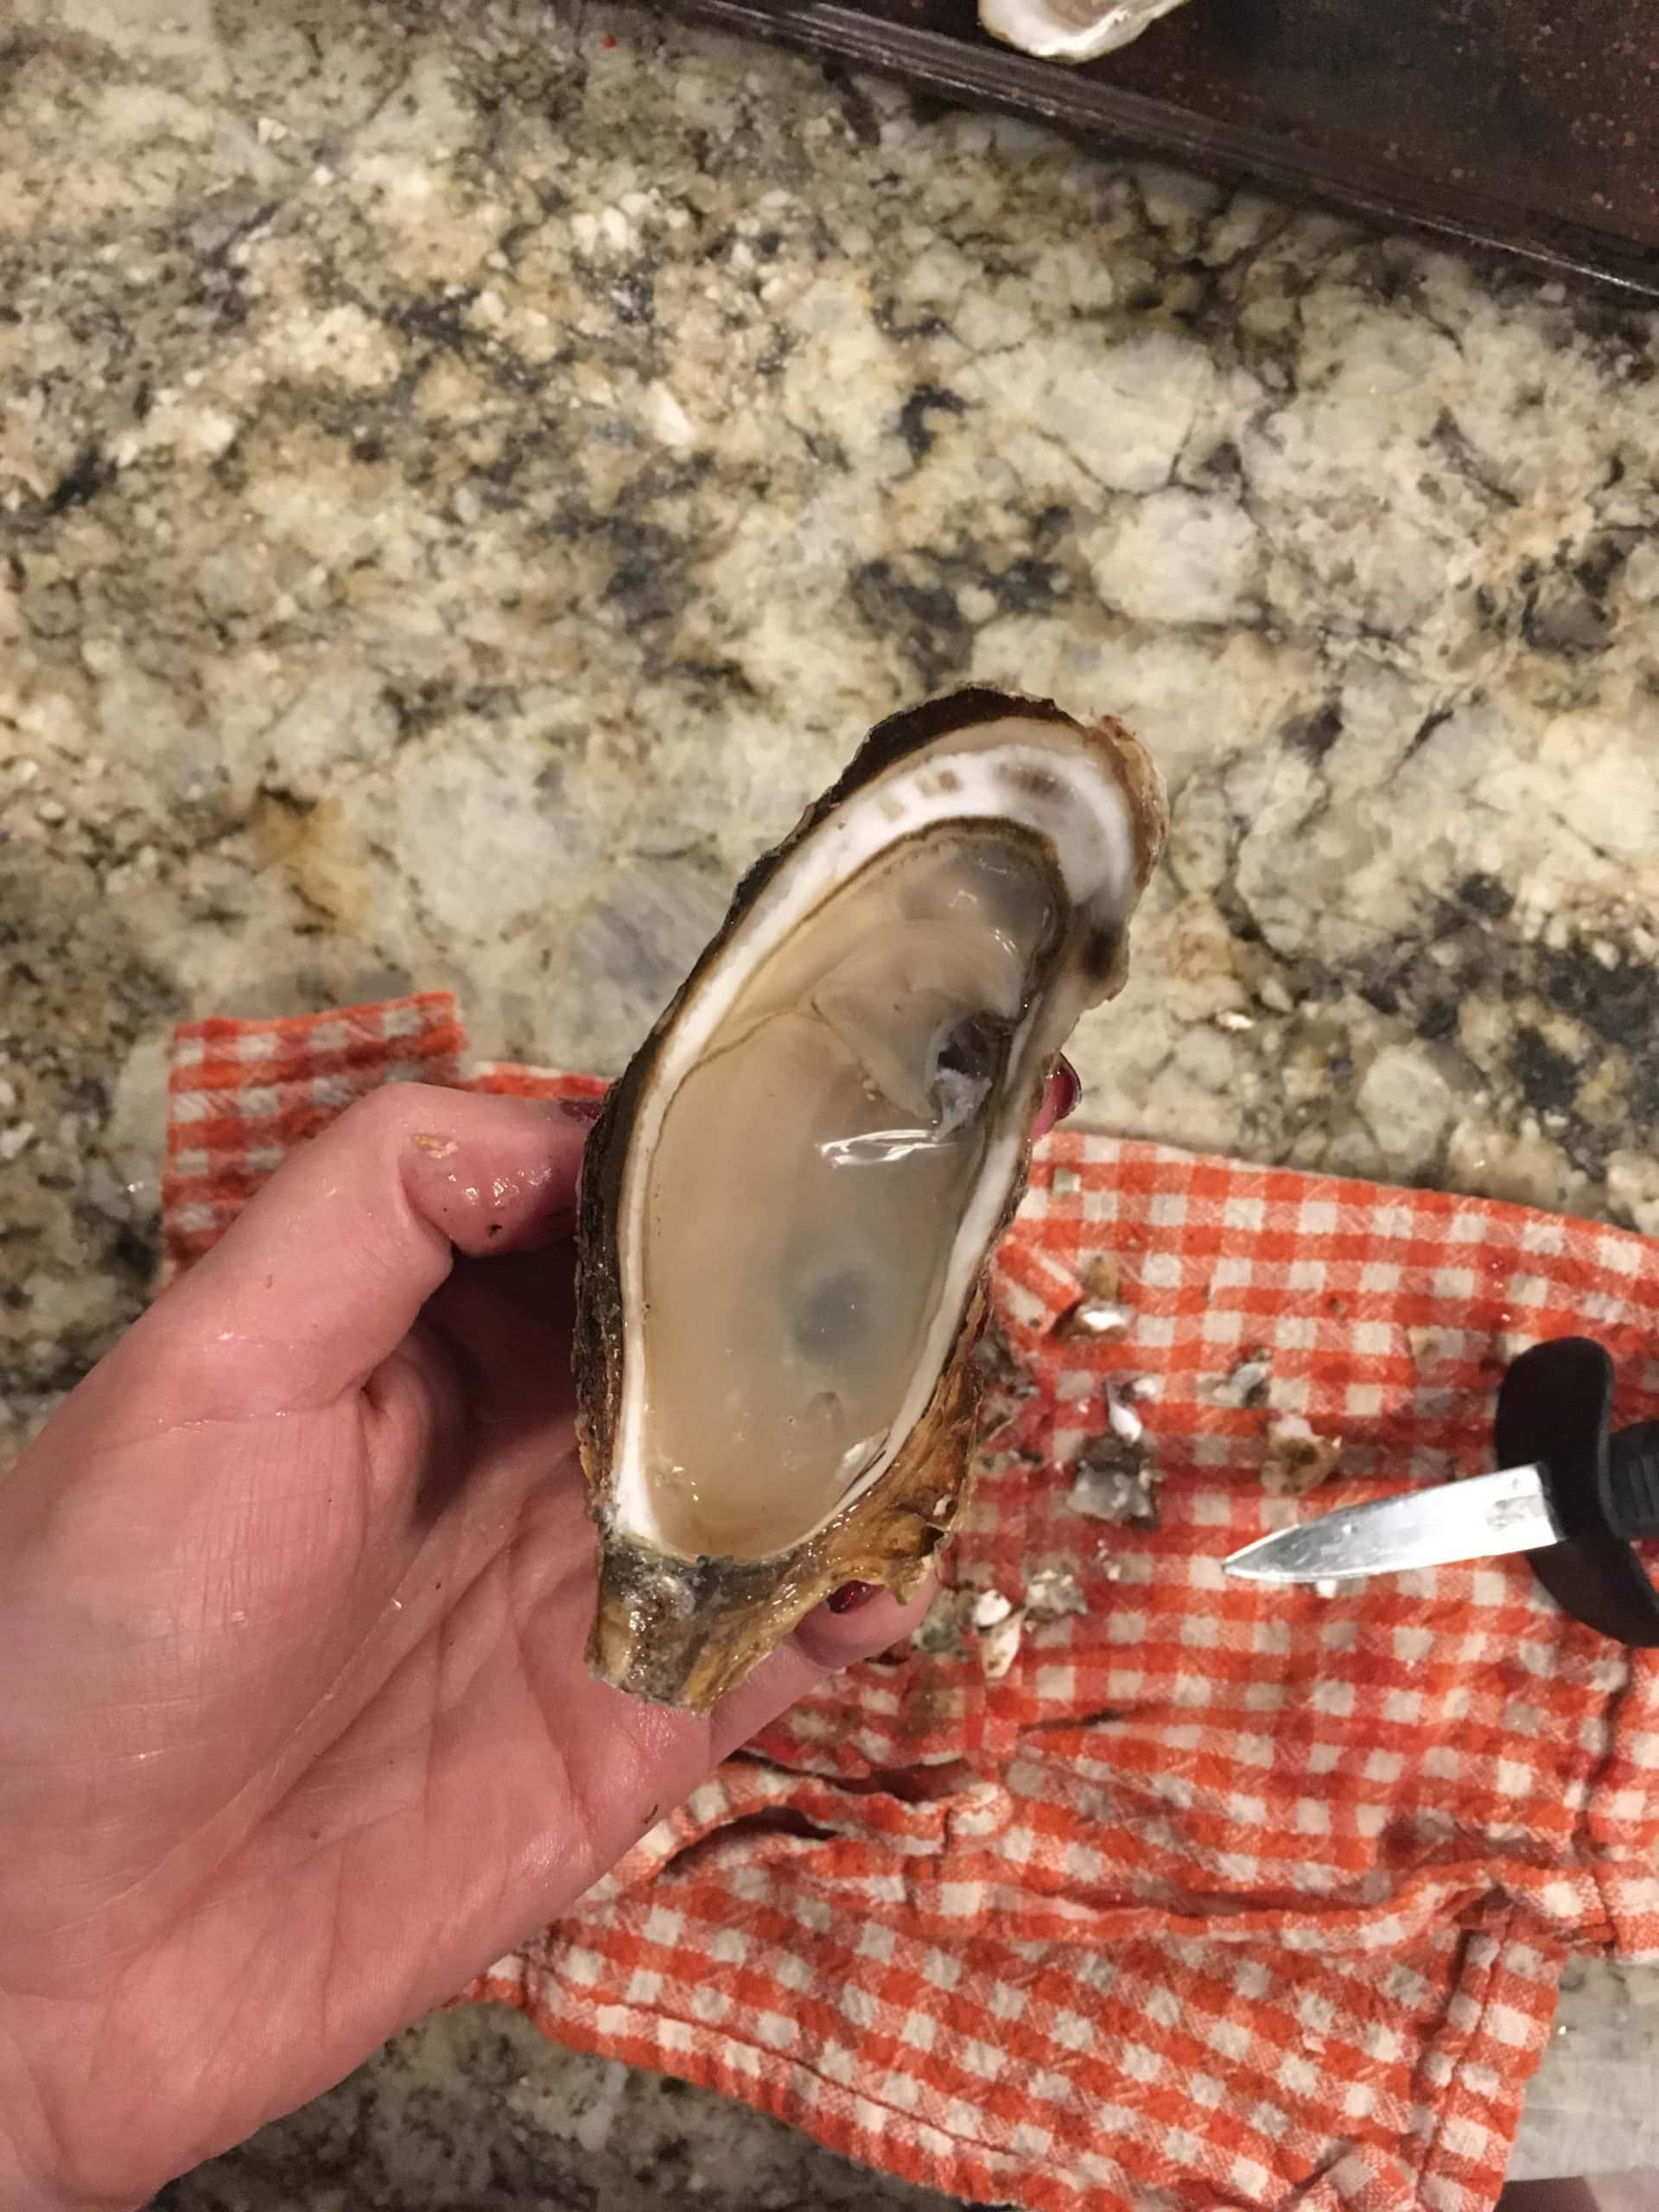 me holding a large oyster in my hand